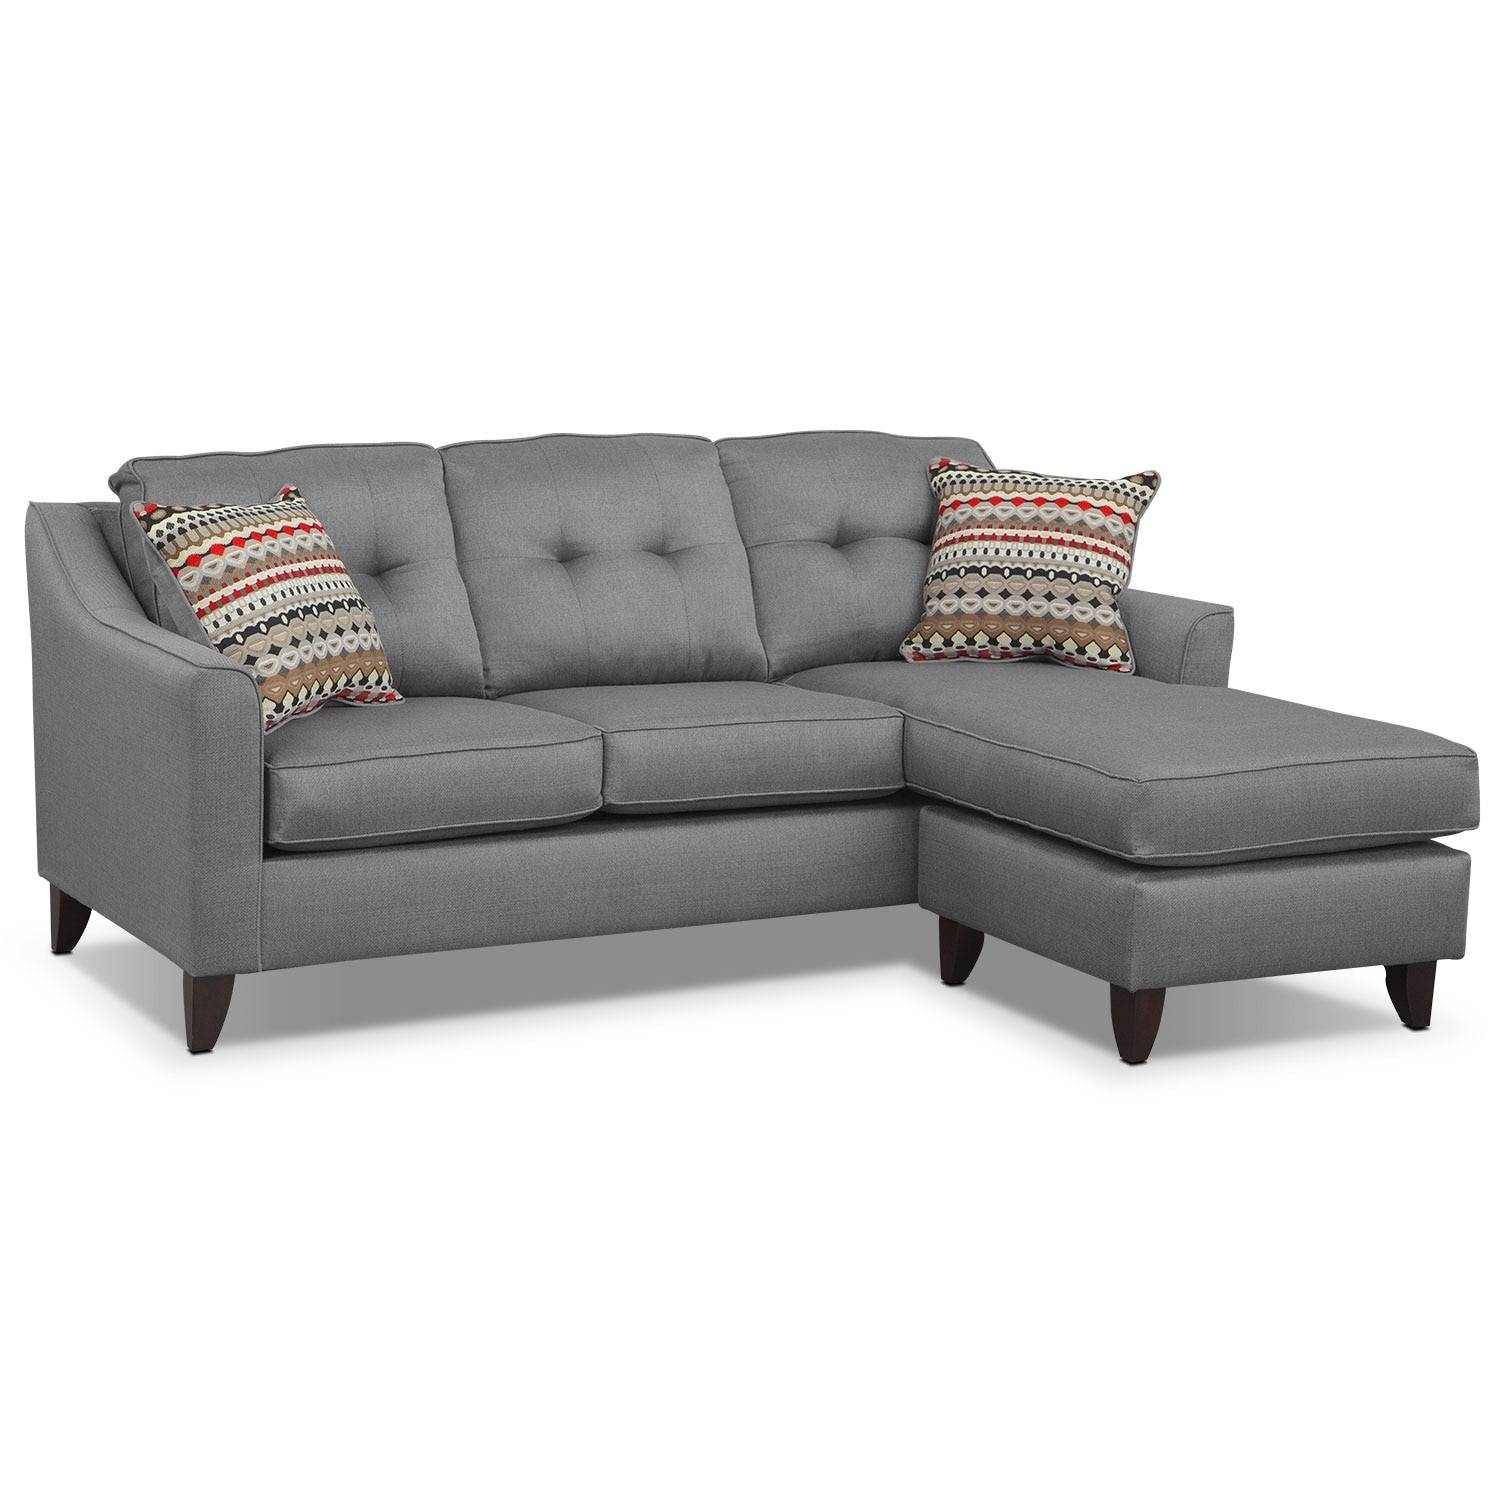 Marco Chaise Sofa And Chair Set – Gray | American Signature Furniture Within Sofa And Chair Set (View 20 of 30)